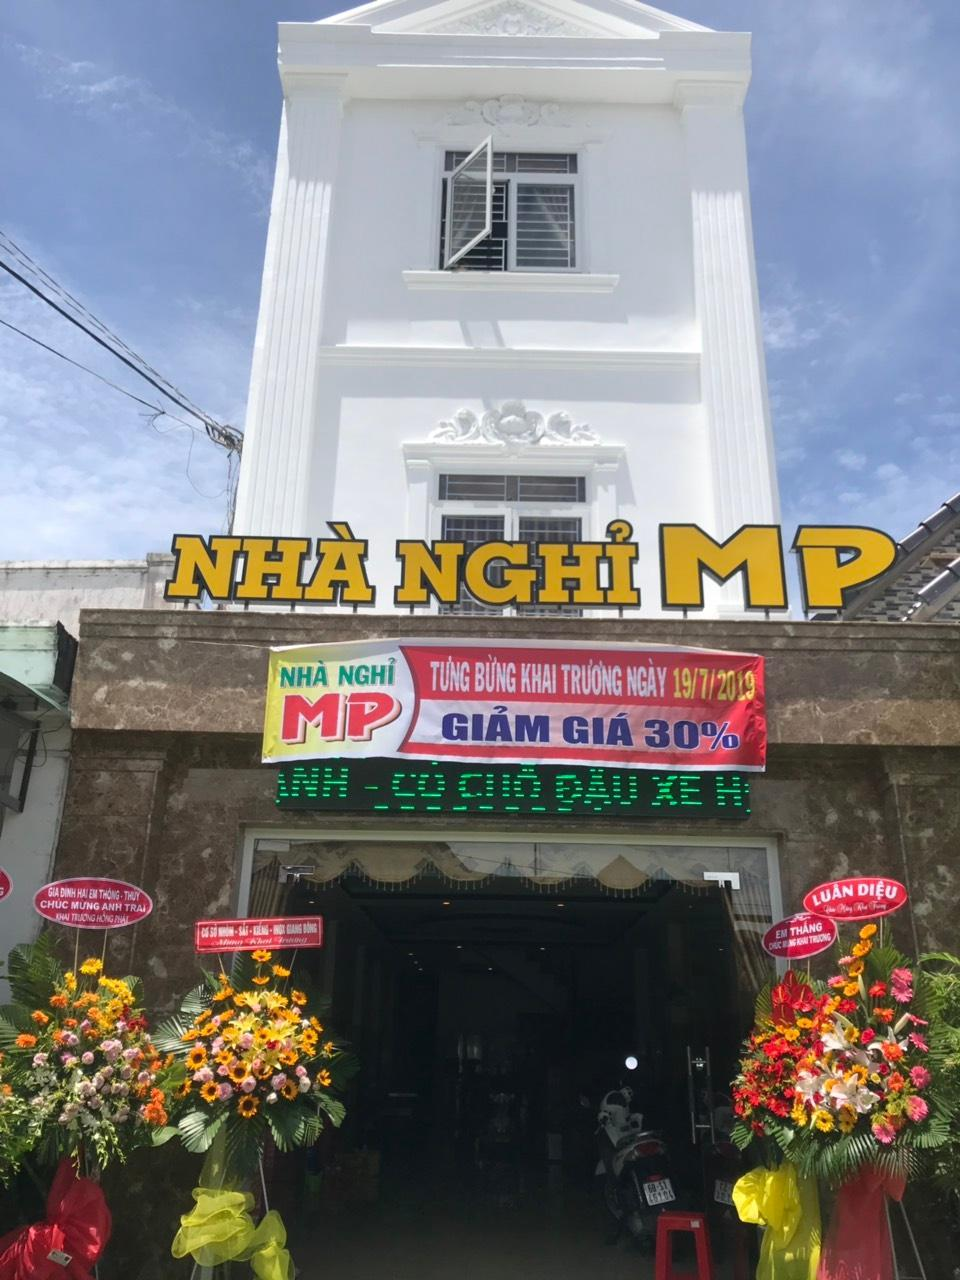 Nice Guest House MP